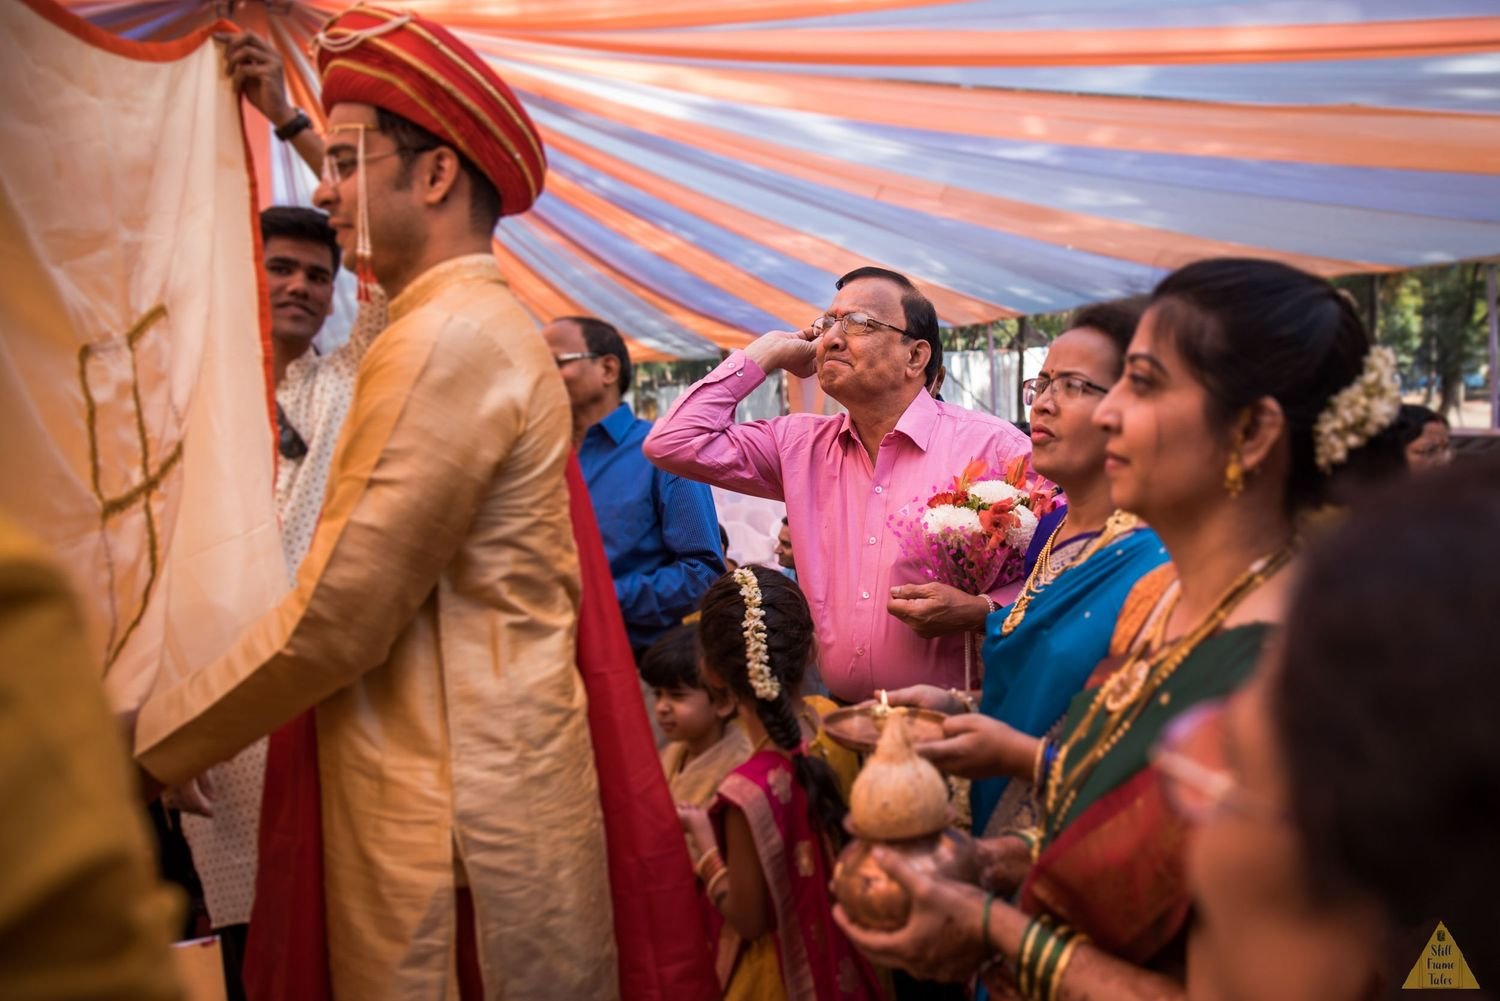 Groom's uncle showering flower petals on him at a fun wedding day varmala ritual